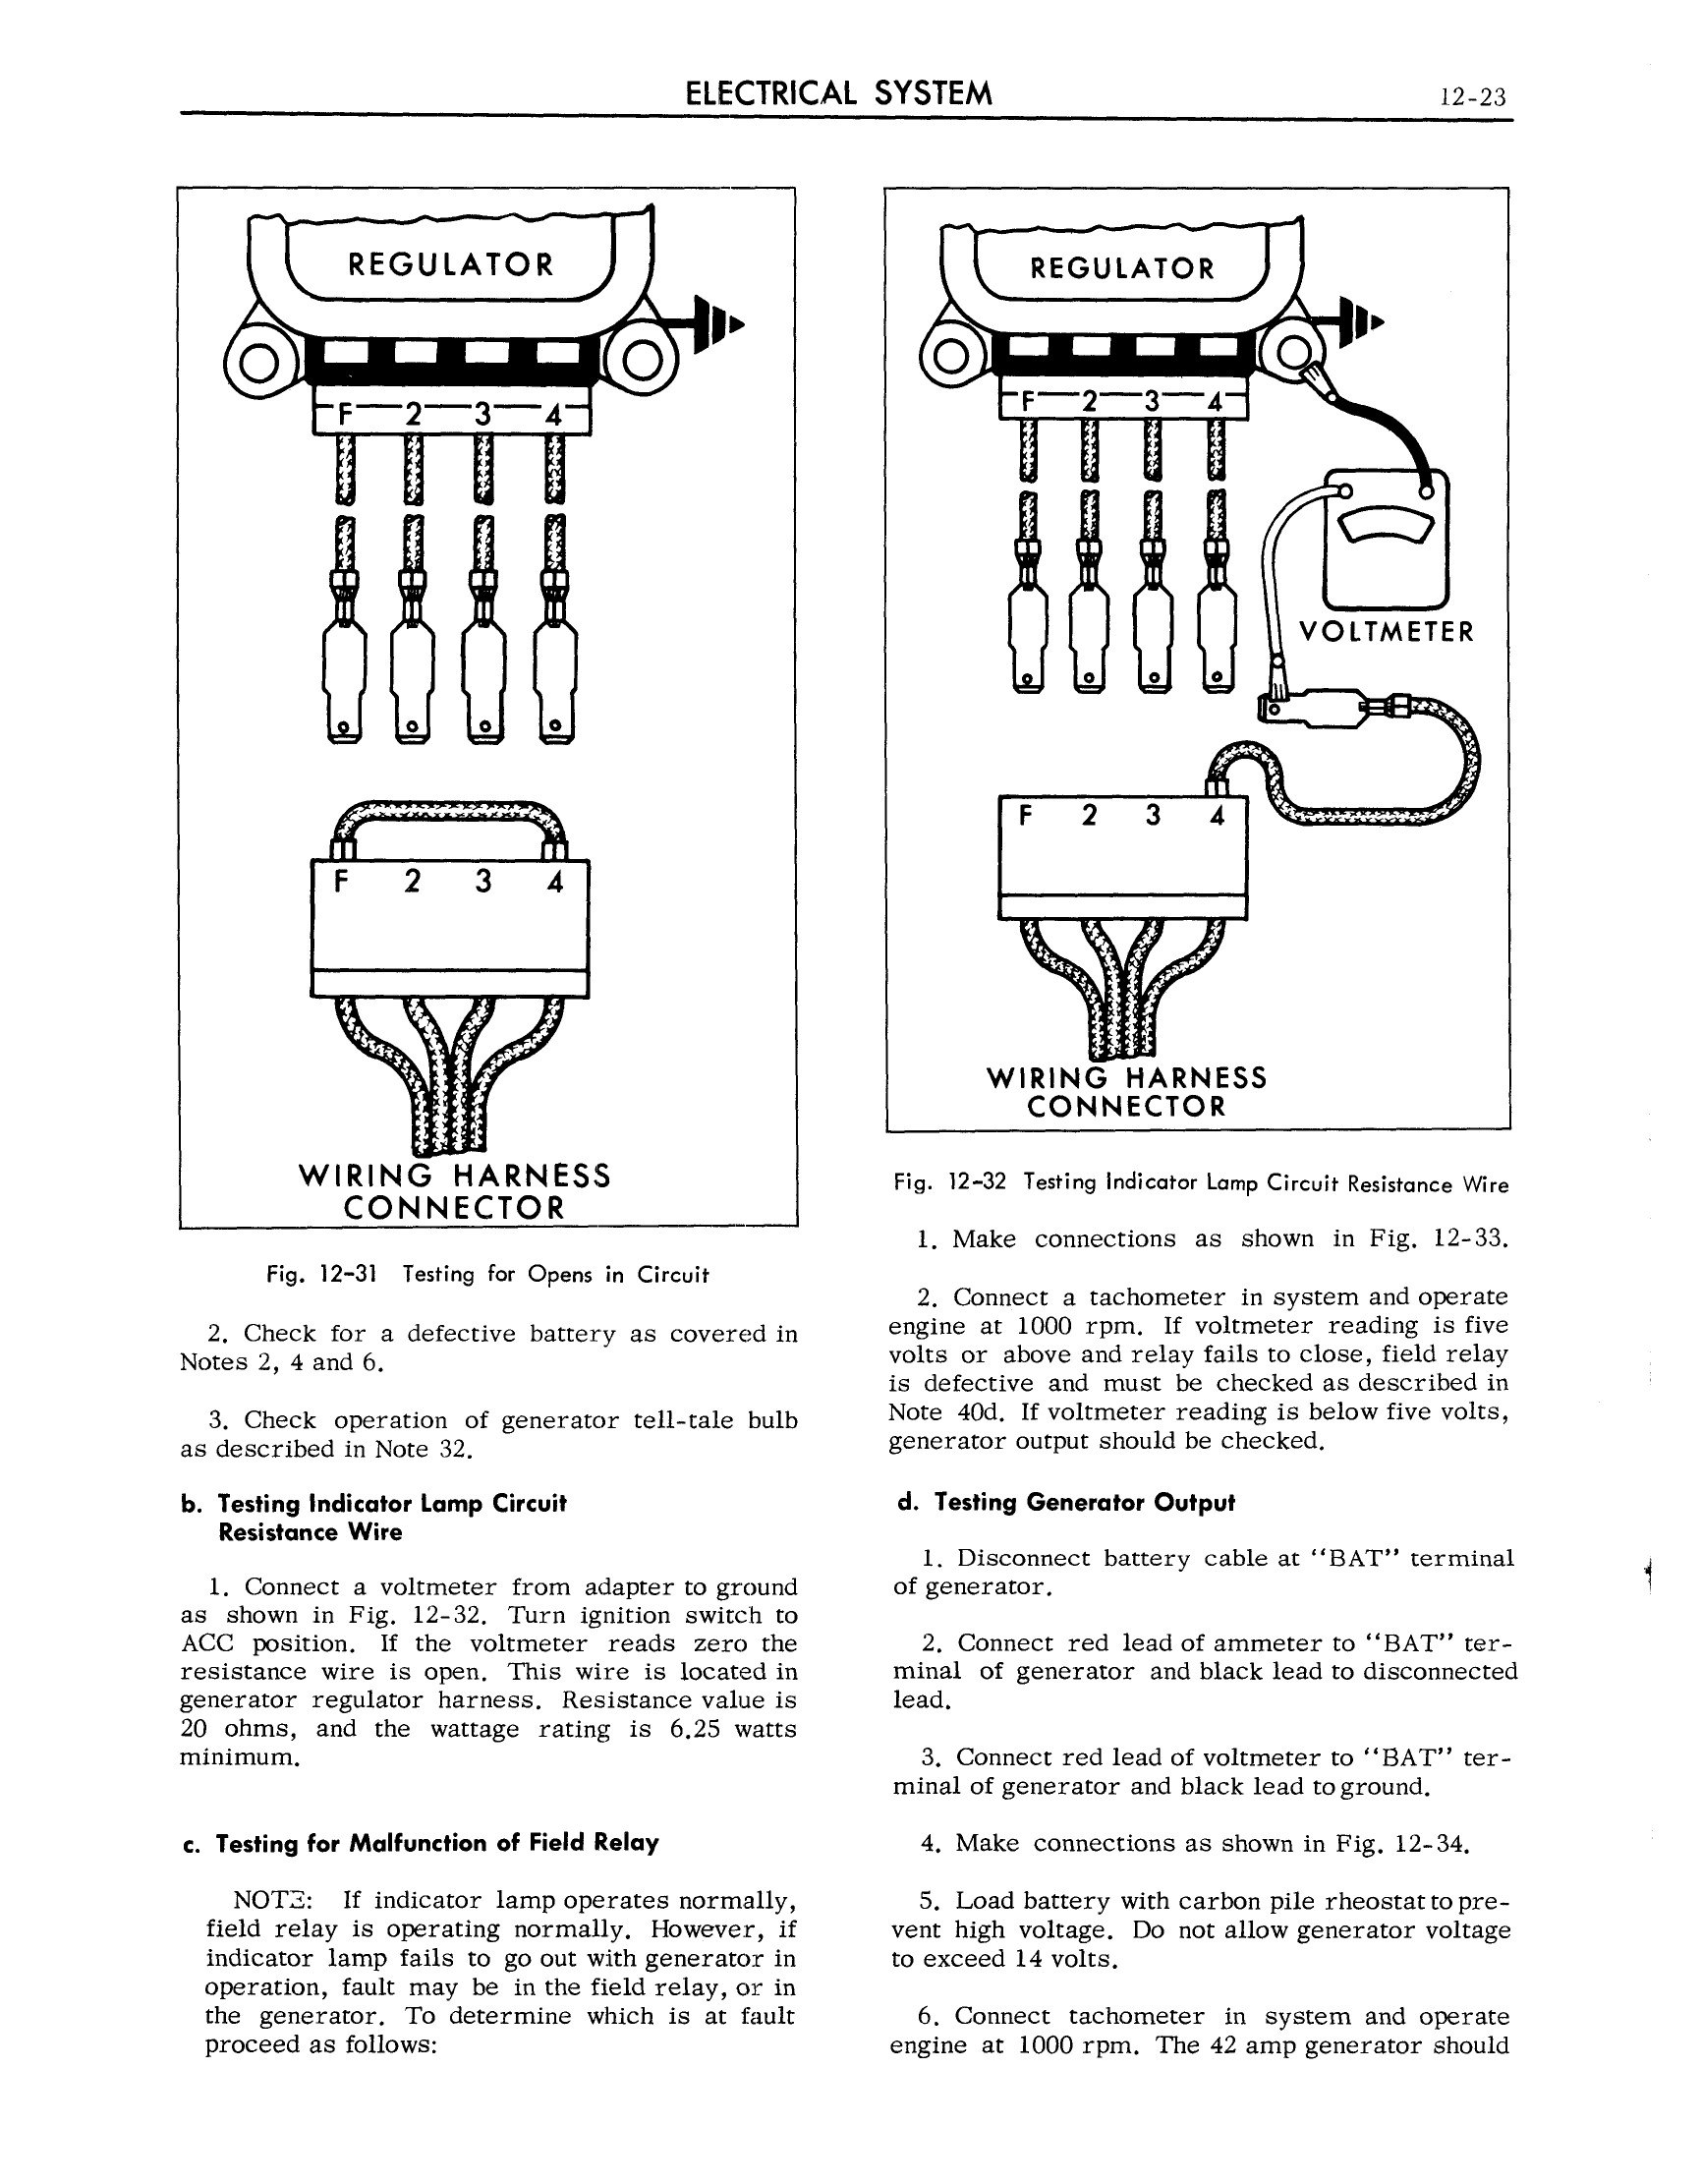 1963 Cadillac Shop Manual- Electrical System Page 23 of 100